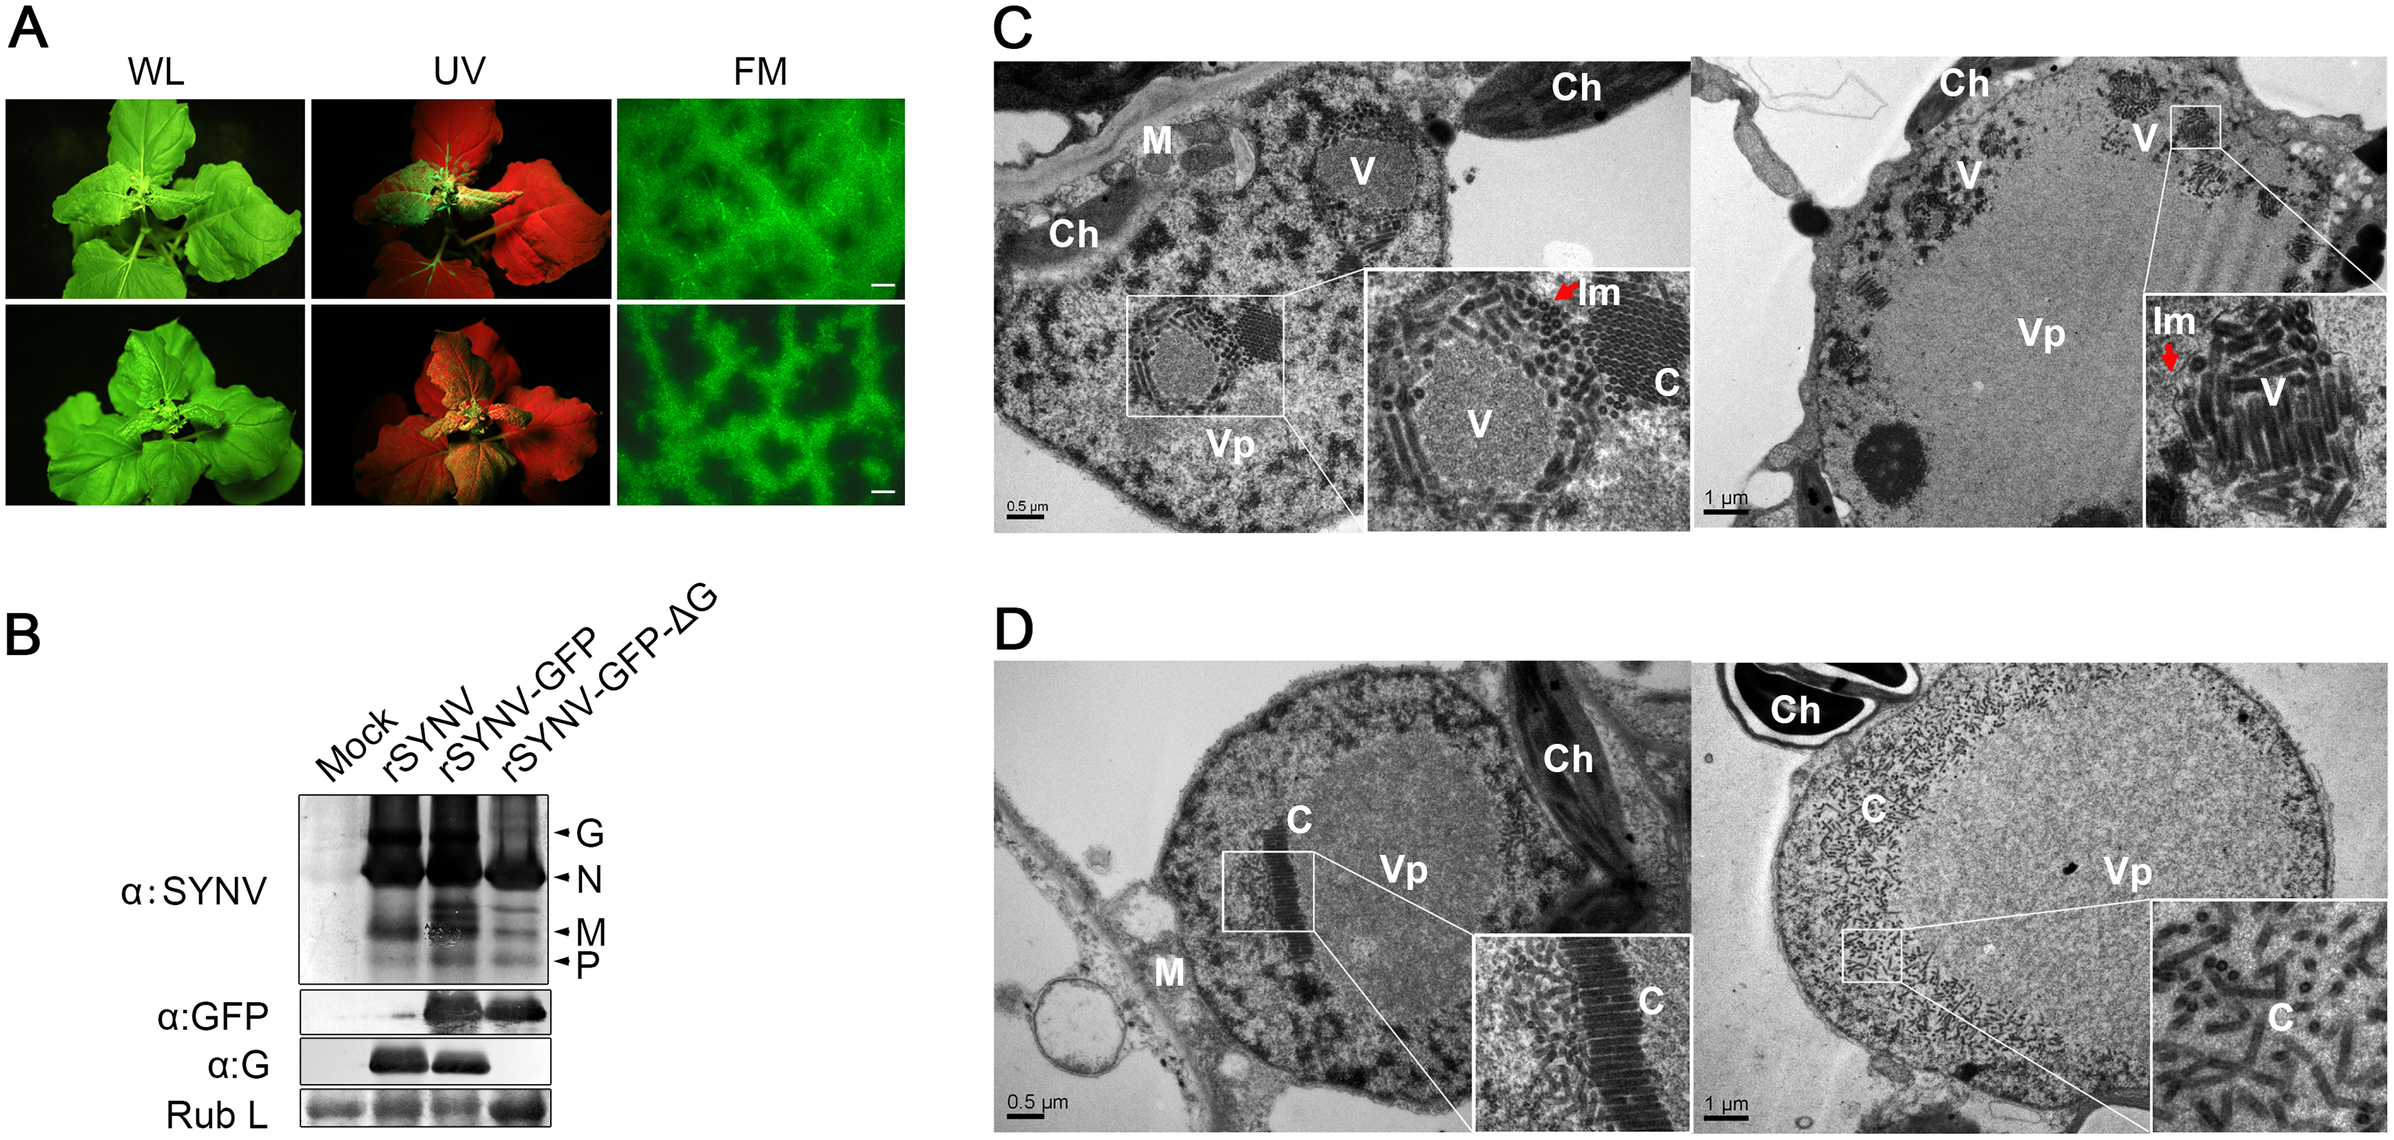 Role of the SYNV glycoprotein in systemic infection and virion maturation.